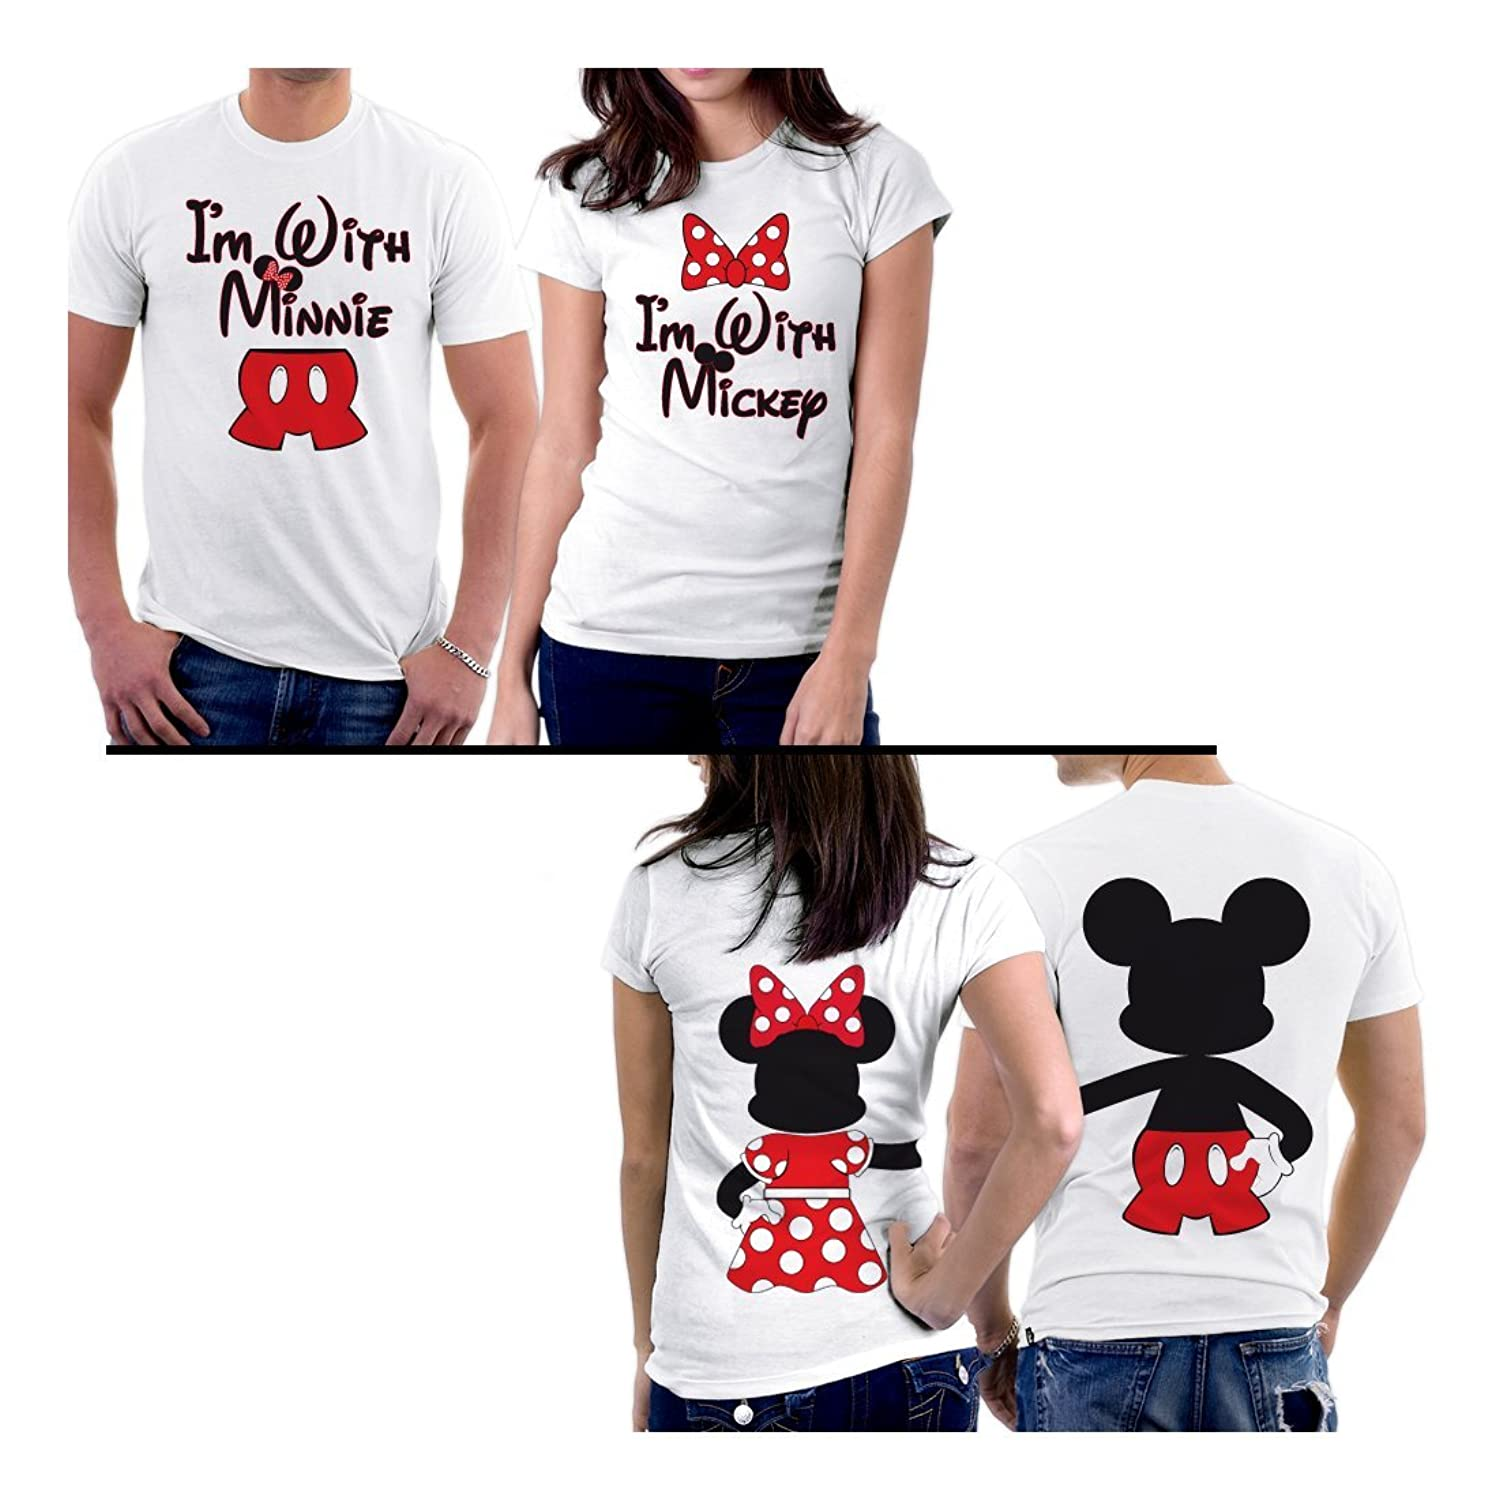 Couple t shirt design white - Amazon Com Picontshirt Mickey Minnie Two Sided Matching Couple Shirts Design 164 Clothing